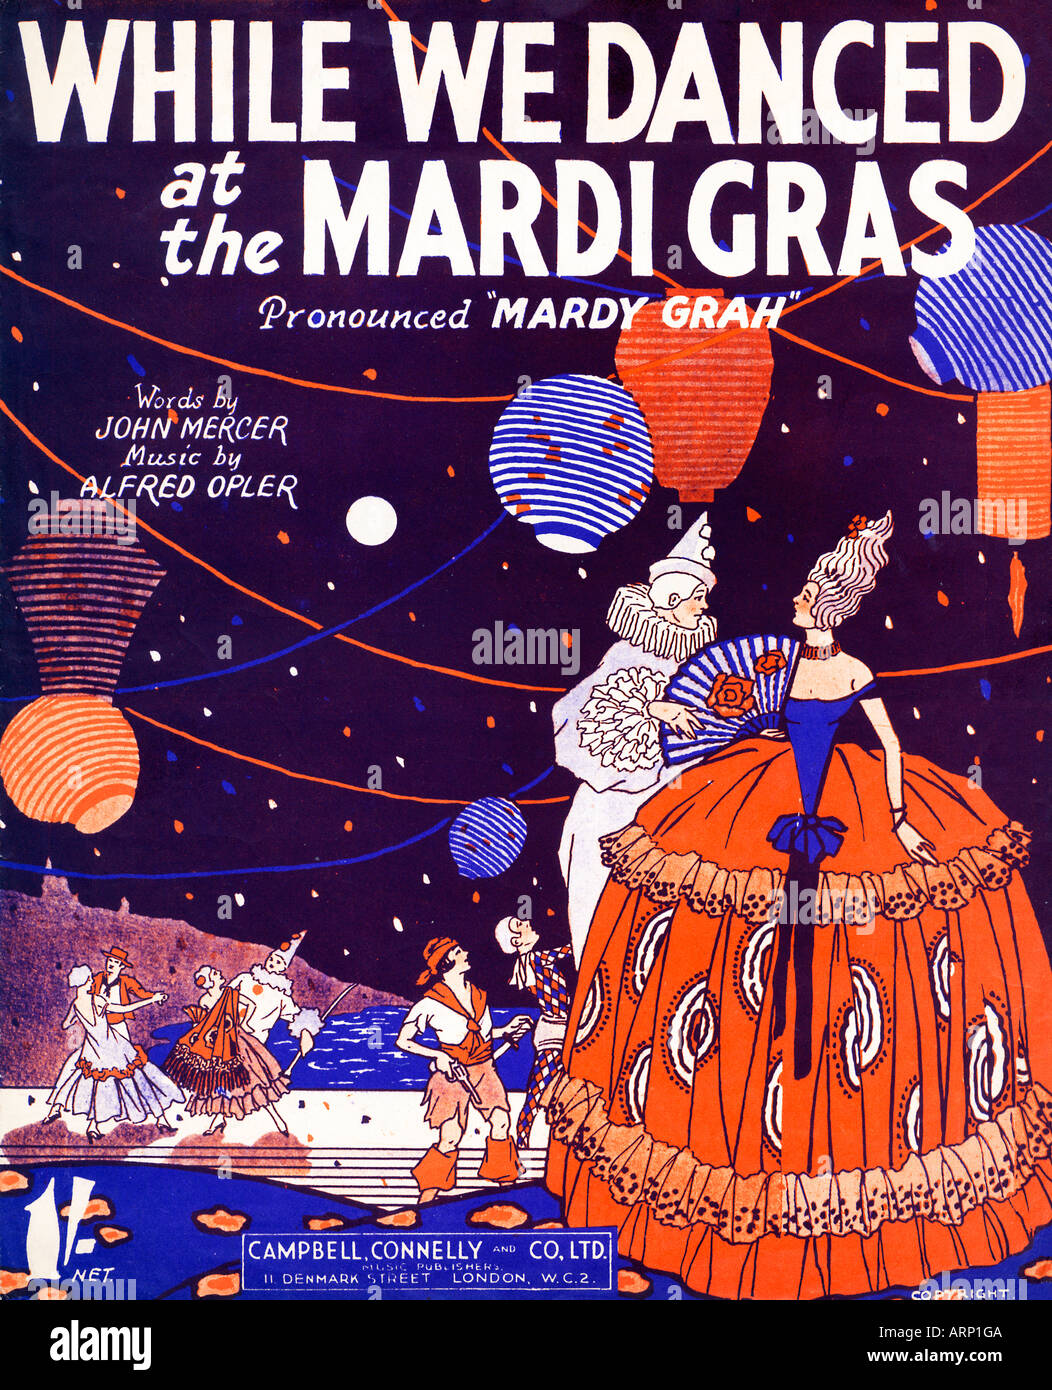 While Danced The Mardi Gras music sheet cover for the 1931 song about the New Orleans festival - Stock Image